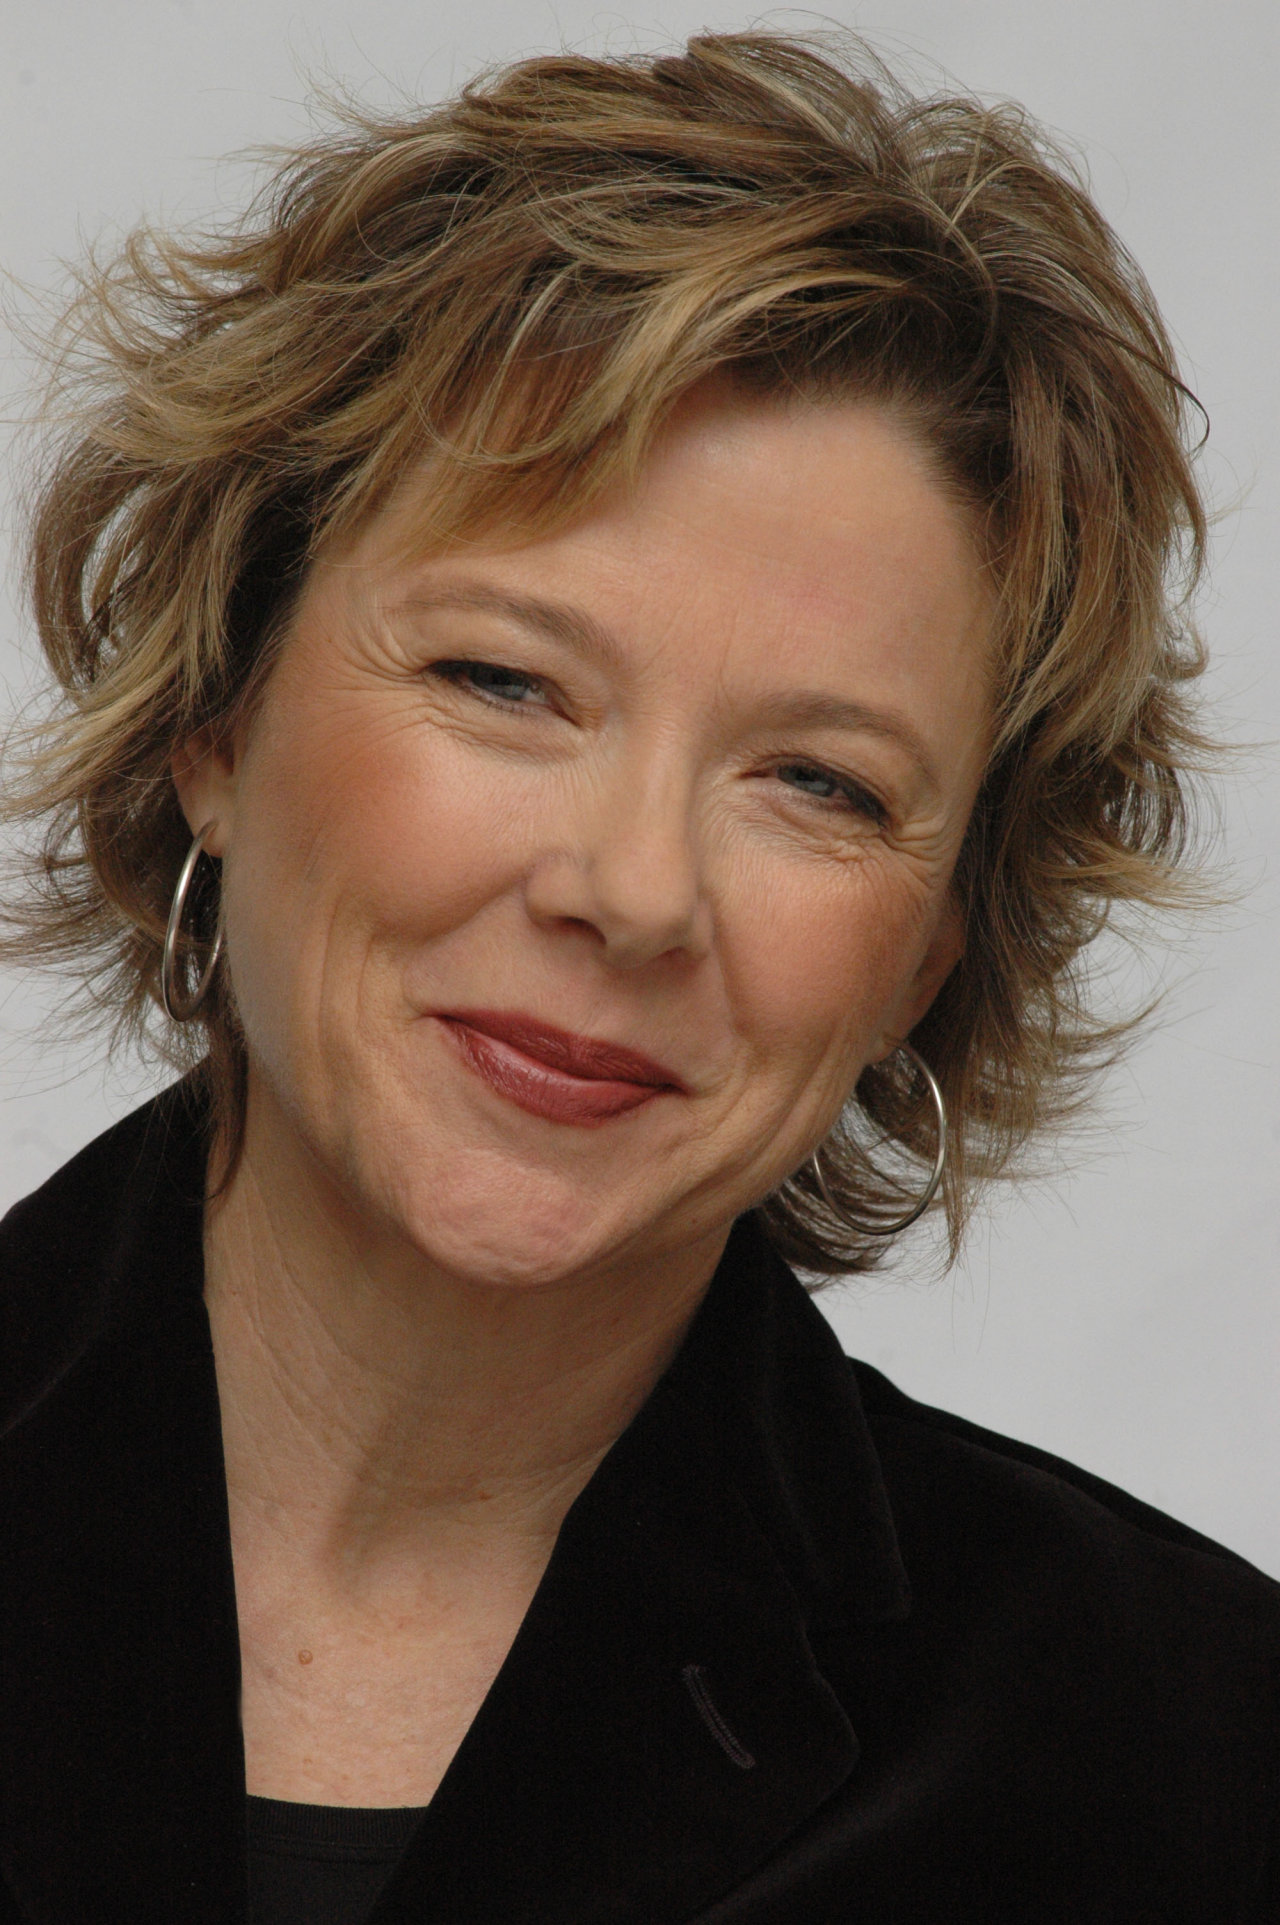 annette bening wallpaper - photo #11